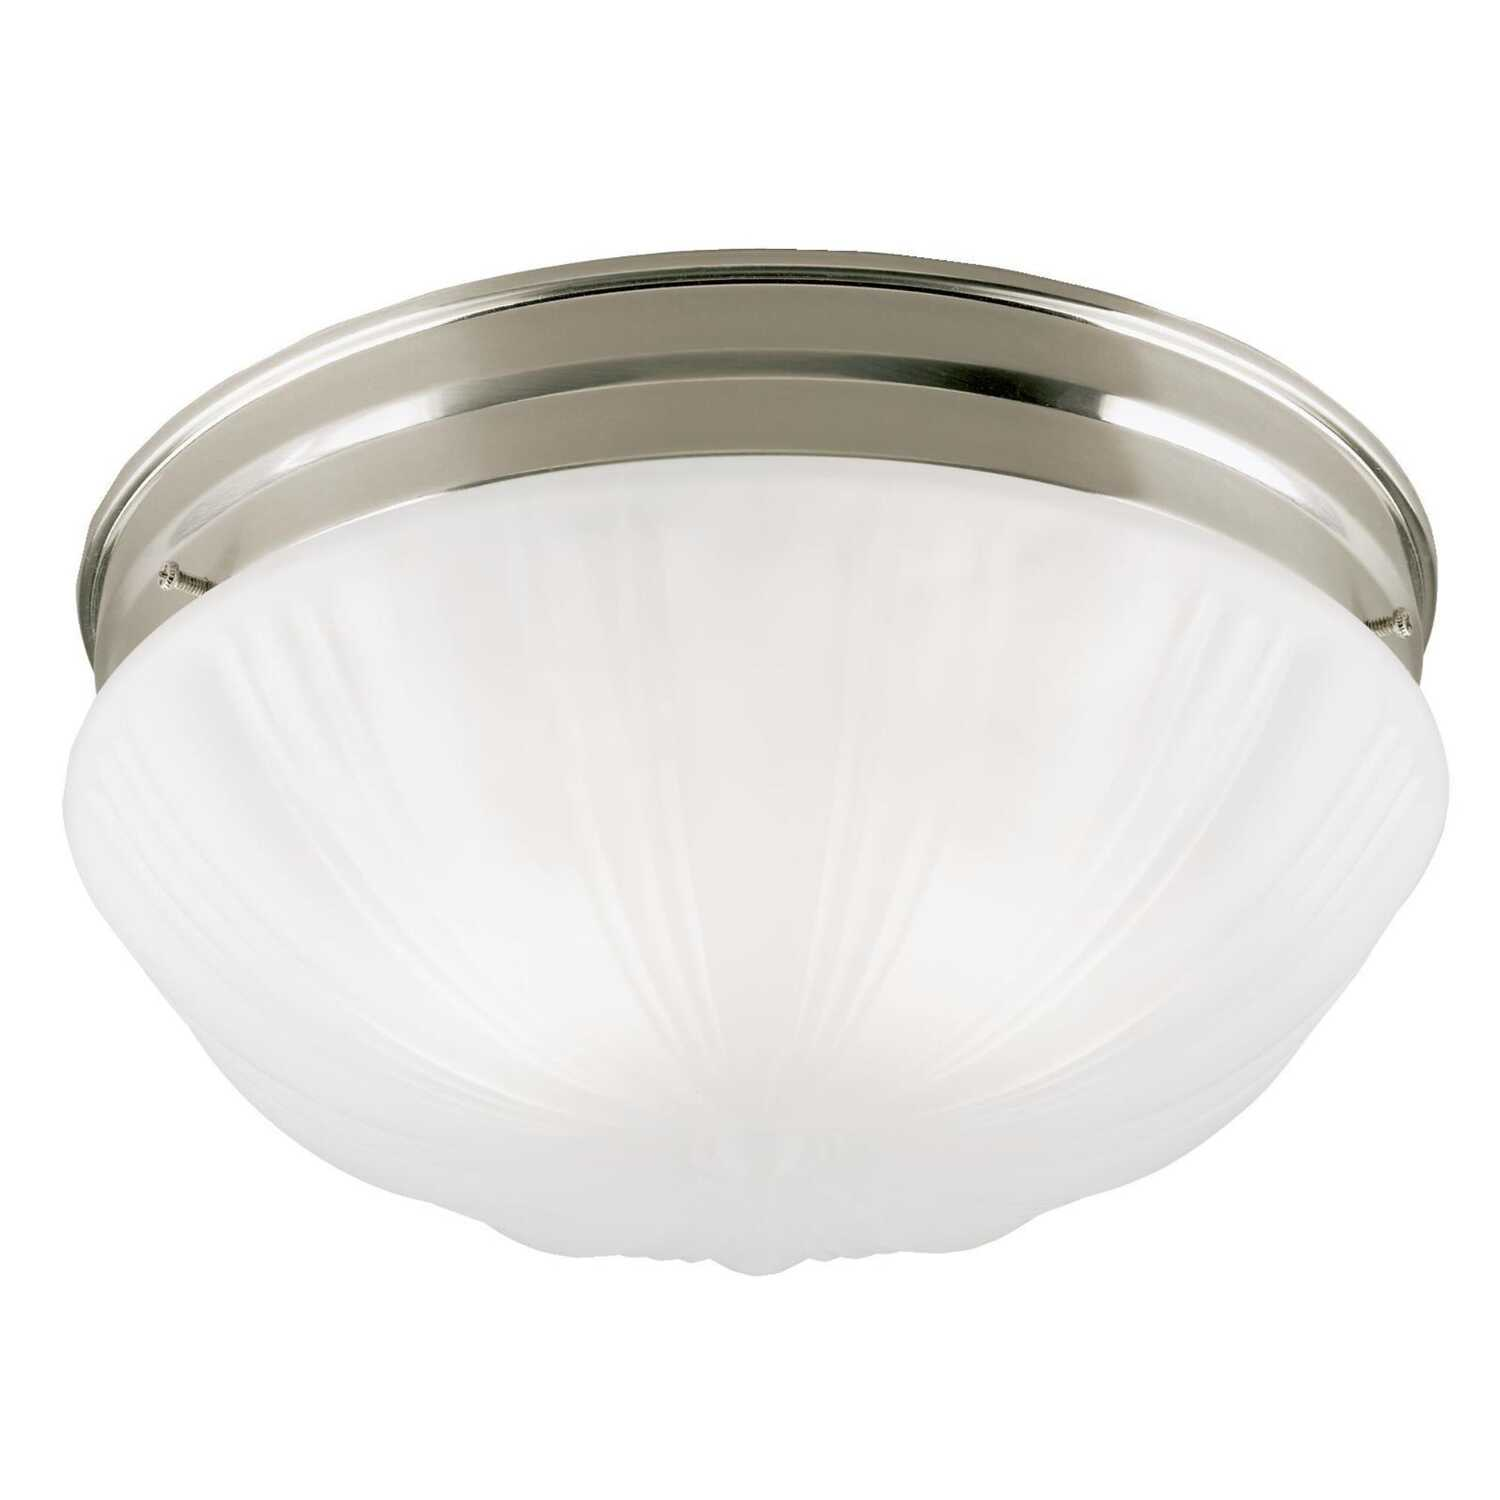 Westinghouse  5-3/4 in. H x 10-3/4 in. W x 10.75 in. L Ceiling Light